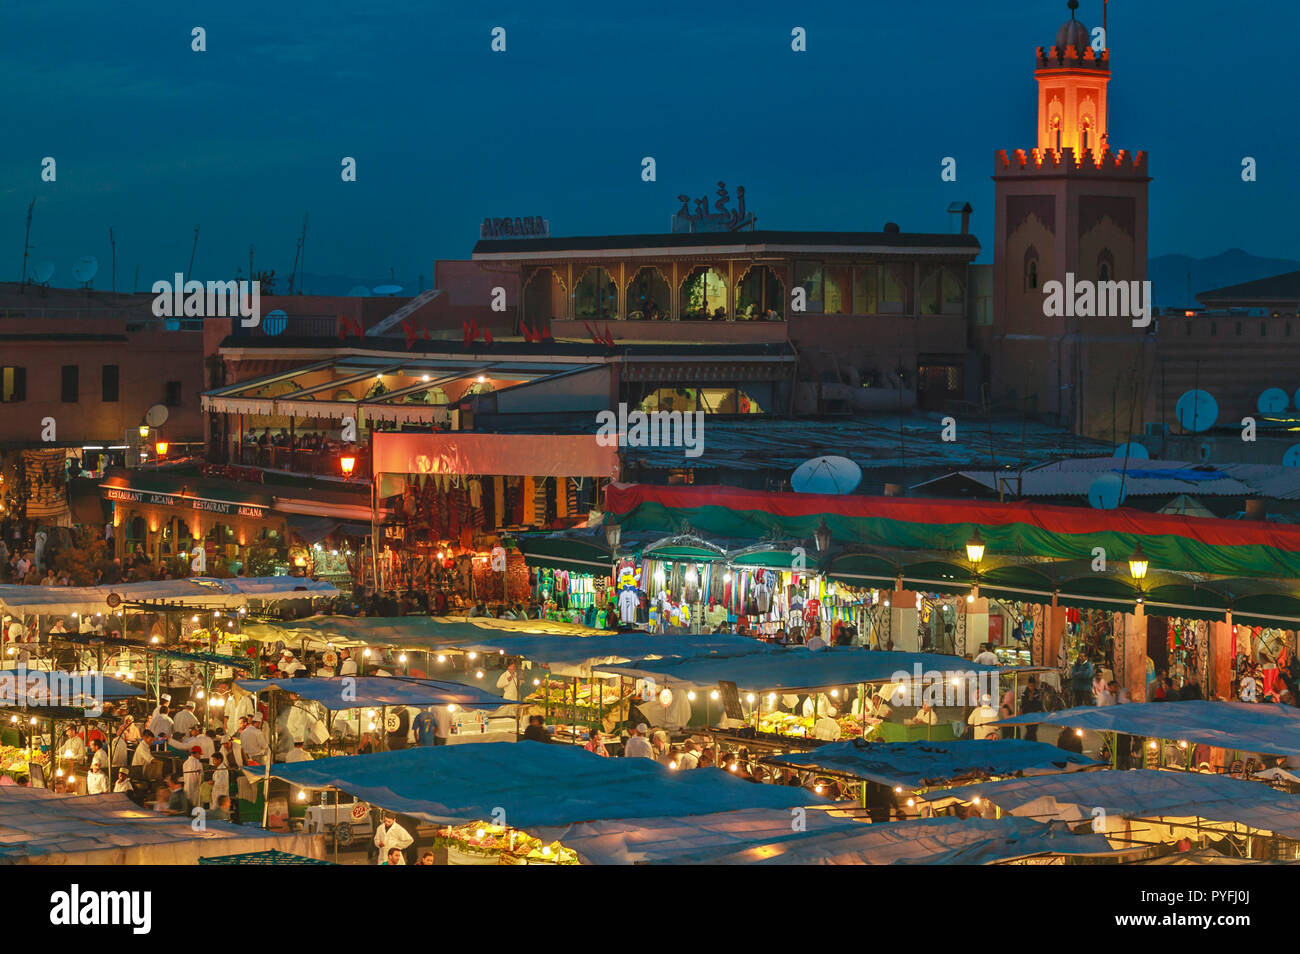 MOROCCO MARRAKECH JEMAA EL FNA THE SQUARE AND FOOD MARKET AT NIGHT WITH MOSQUE TOWER - Stock Image